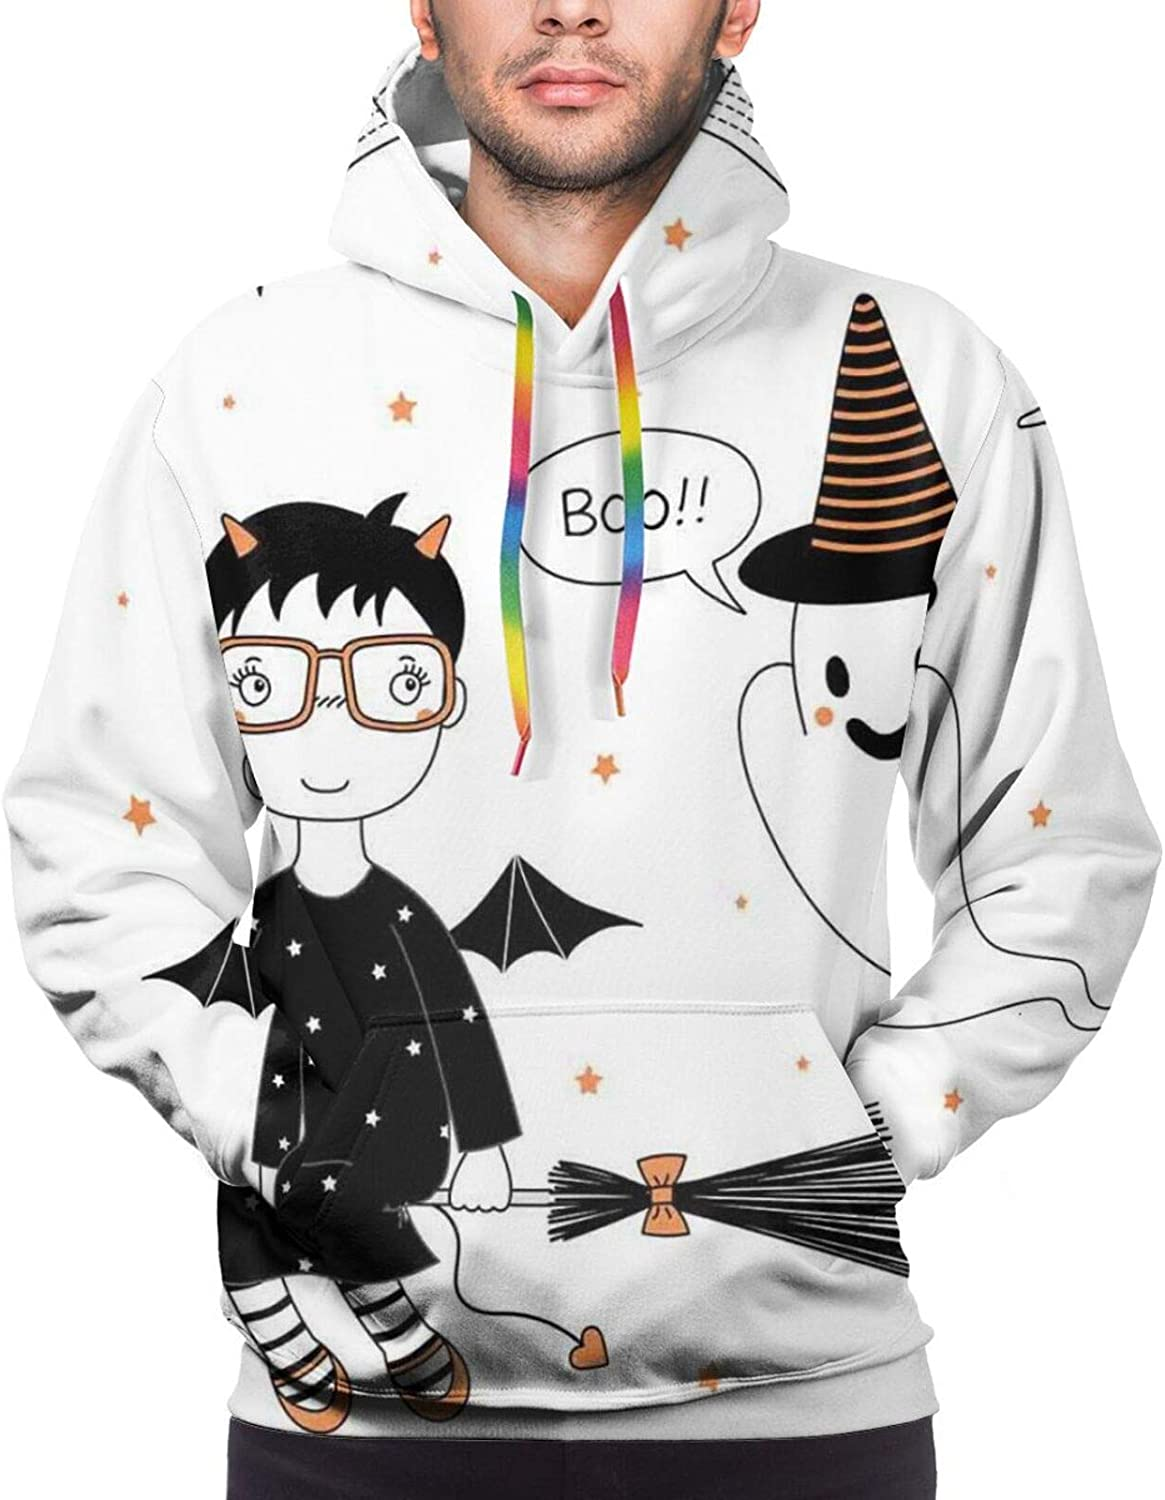 Men's Hoodies Sweatshirts,Cartoon Witch Girl Flying On A Broomstick with A Bat Heart Moon and Stars,Small